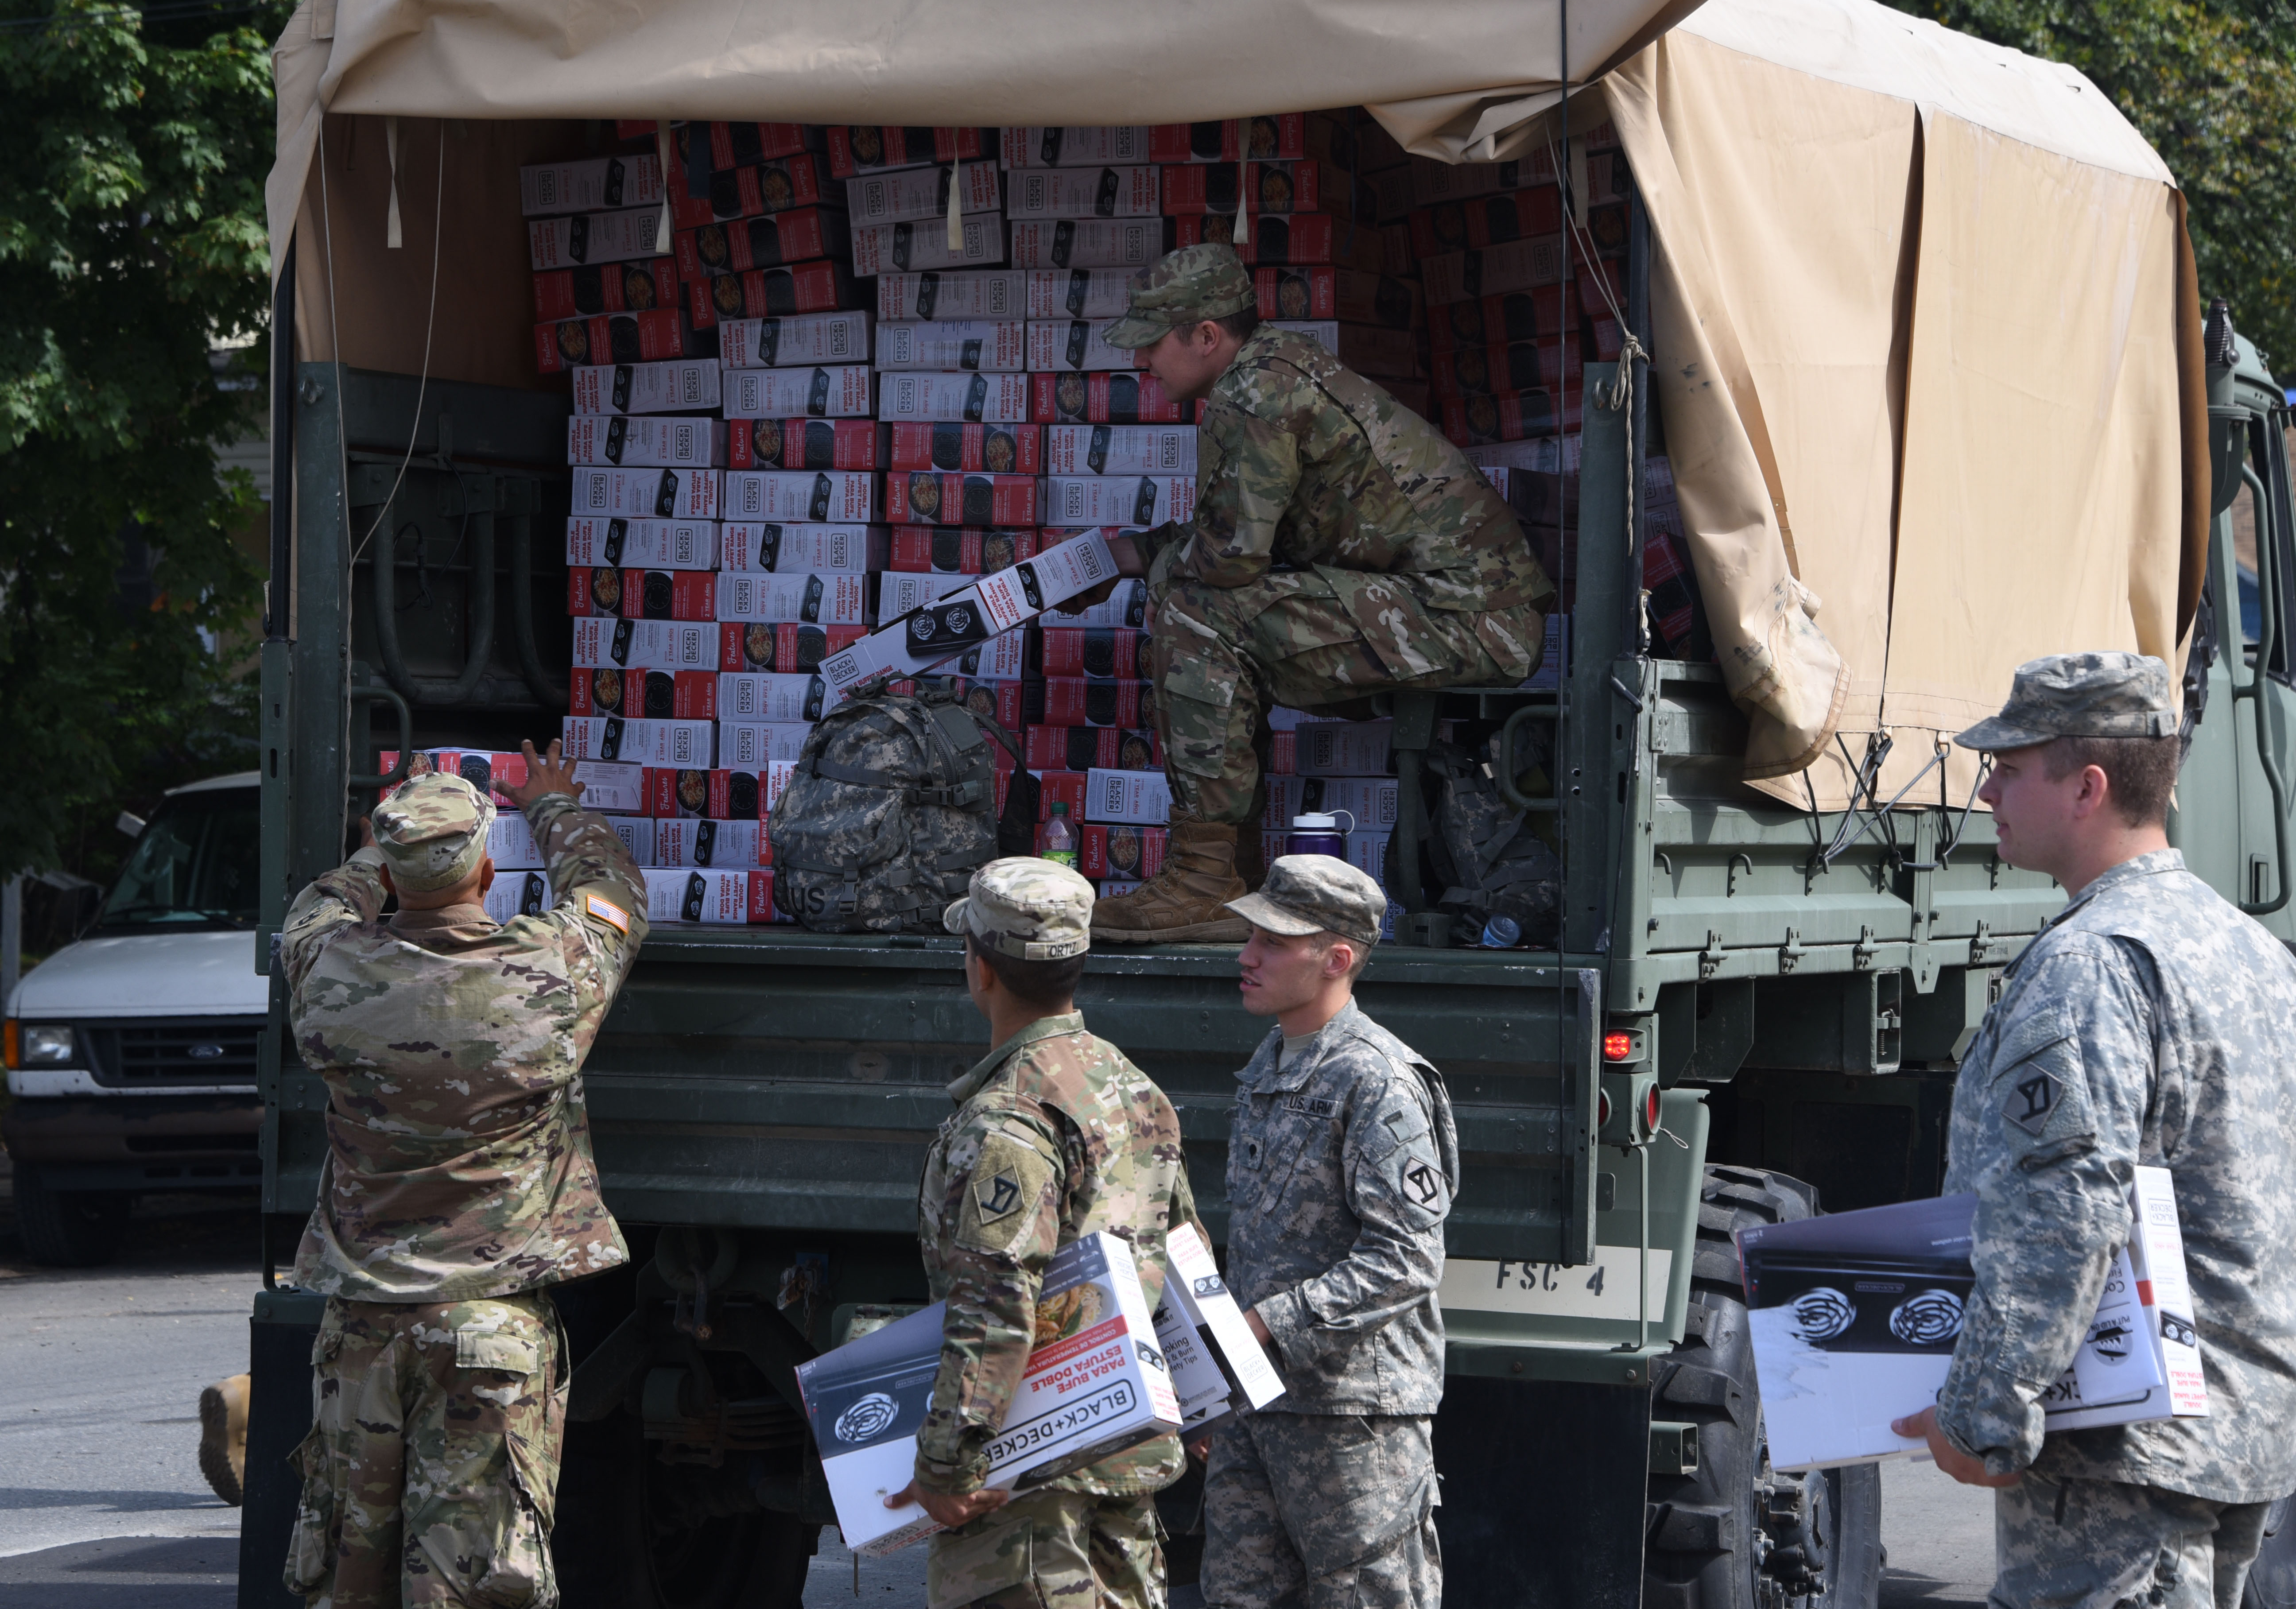 Soldiers of the 101 FSC, 101st  Engineering Battalion, hand out boxes of hot plates in Lawrence, Massachusetts on Sept. 23, 2018. National Guard soldiers and airmen delivered hundreds of hotplates to families throughout Lawrence after the gas explosions in the Merrimack Valley.